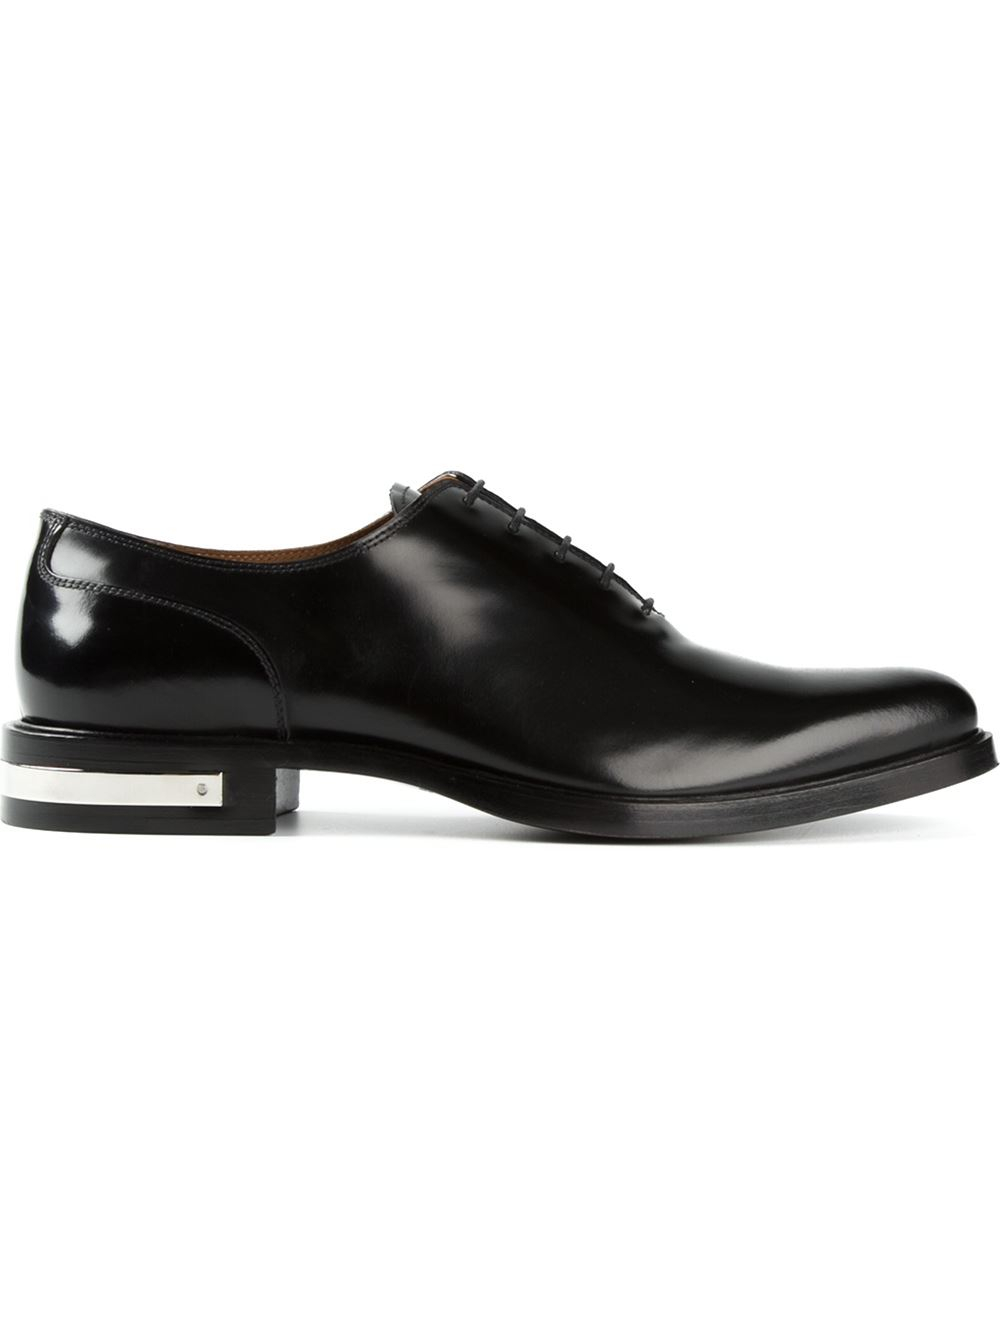 givenchy metallic heel oxford shoes in black for lyst